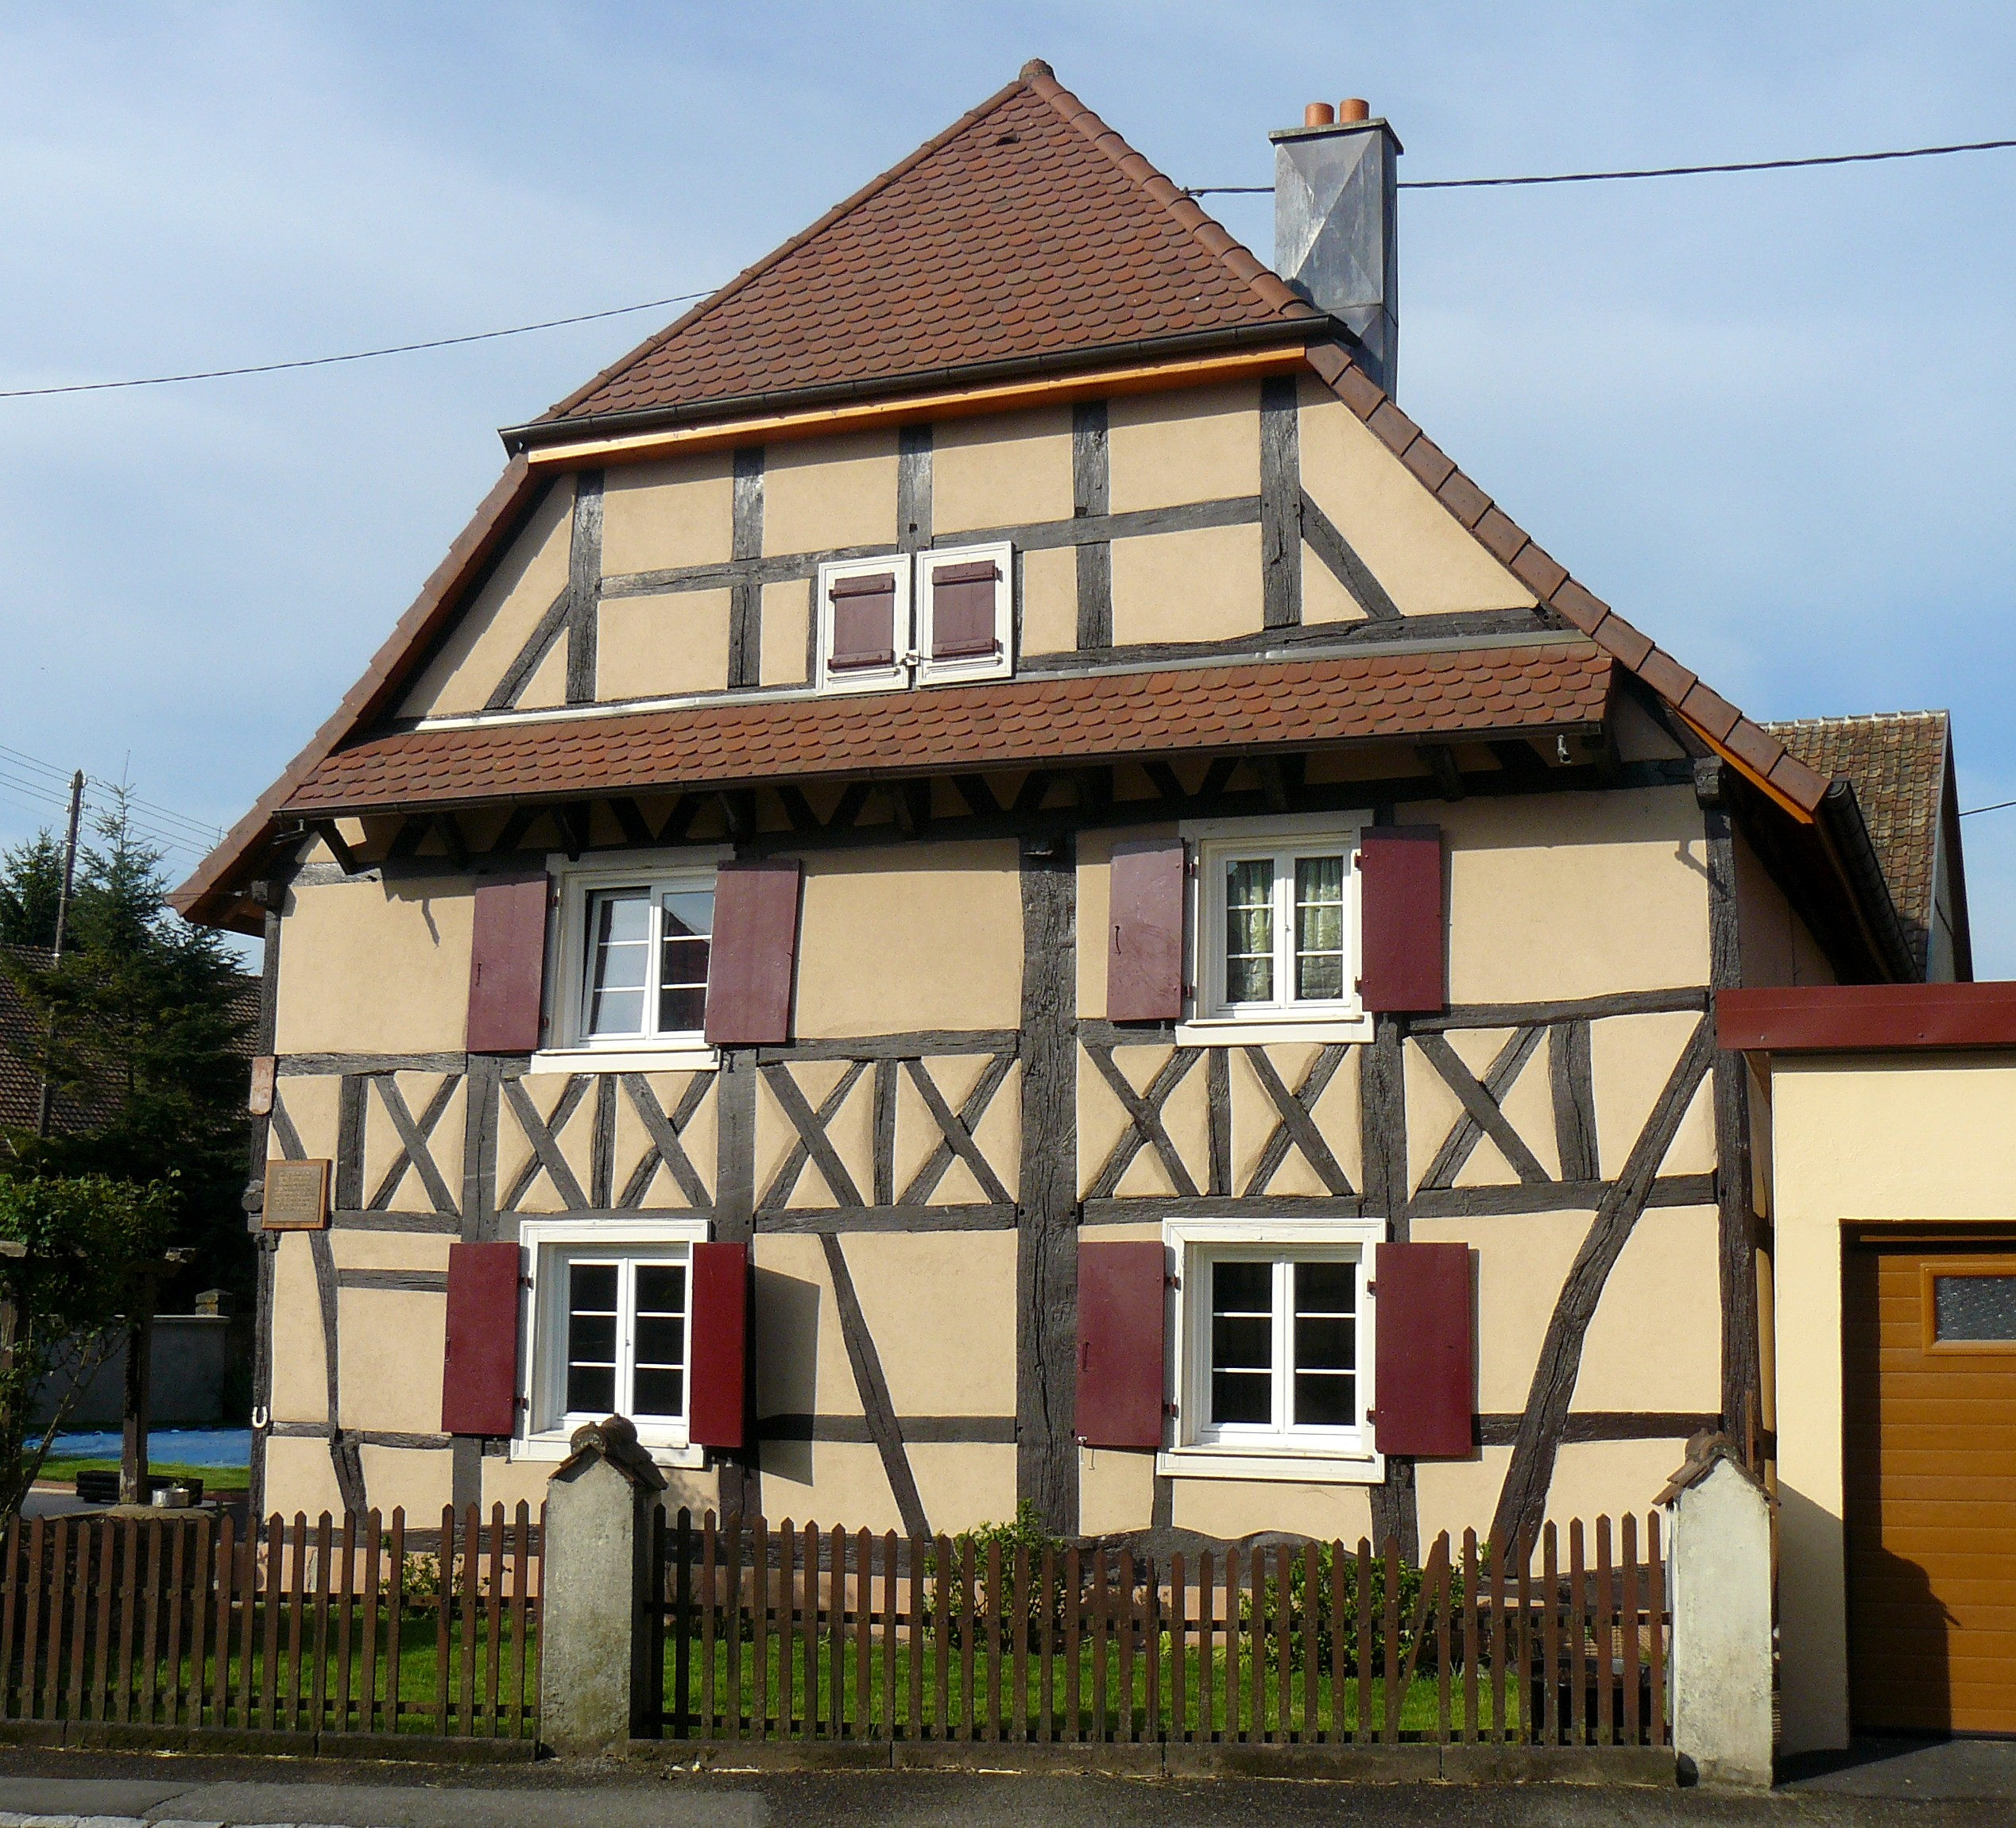 File:Maison ancienne Reiningue 2008.jpg - Wikimedia Commons